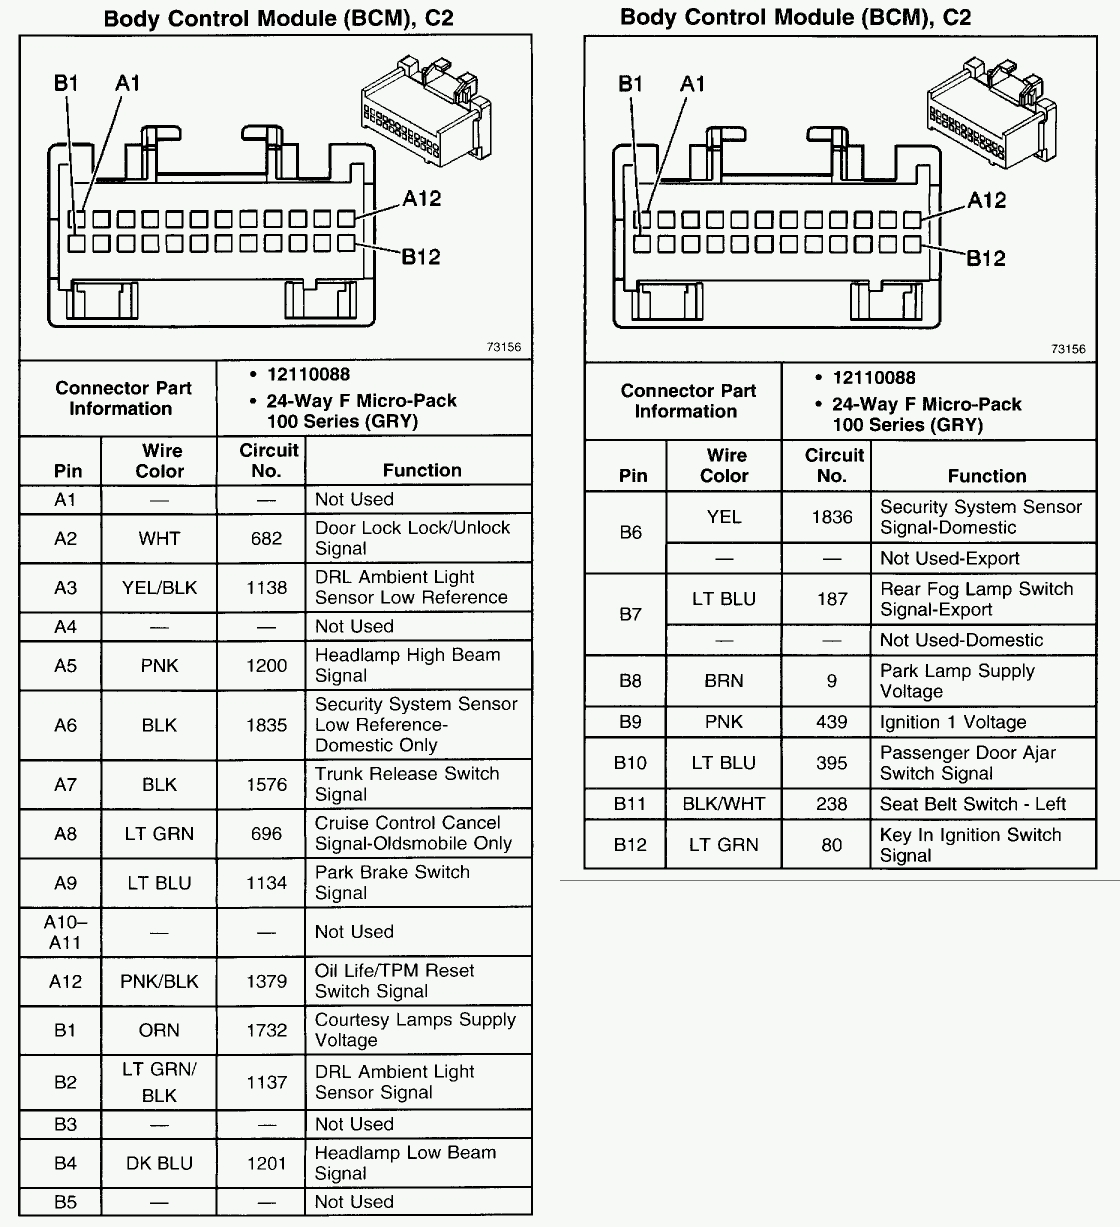 pontiac grand prix radio wiring diagram 2013 07 17 171026 2000 dic intended for 2004 pontiac grand prix parts diagram pontiac grand prix radio wiring diagram 2013 07 17 171026 2000 dic 2000 grand prix radio wiring diagram at mifinder.co